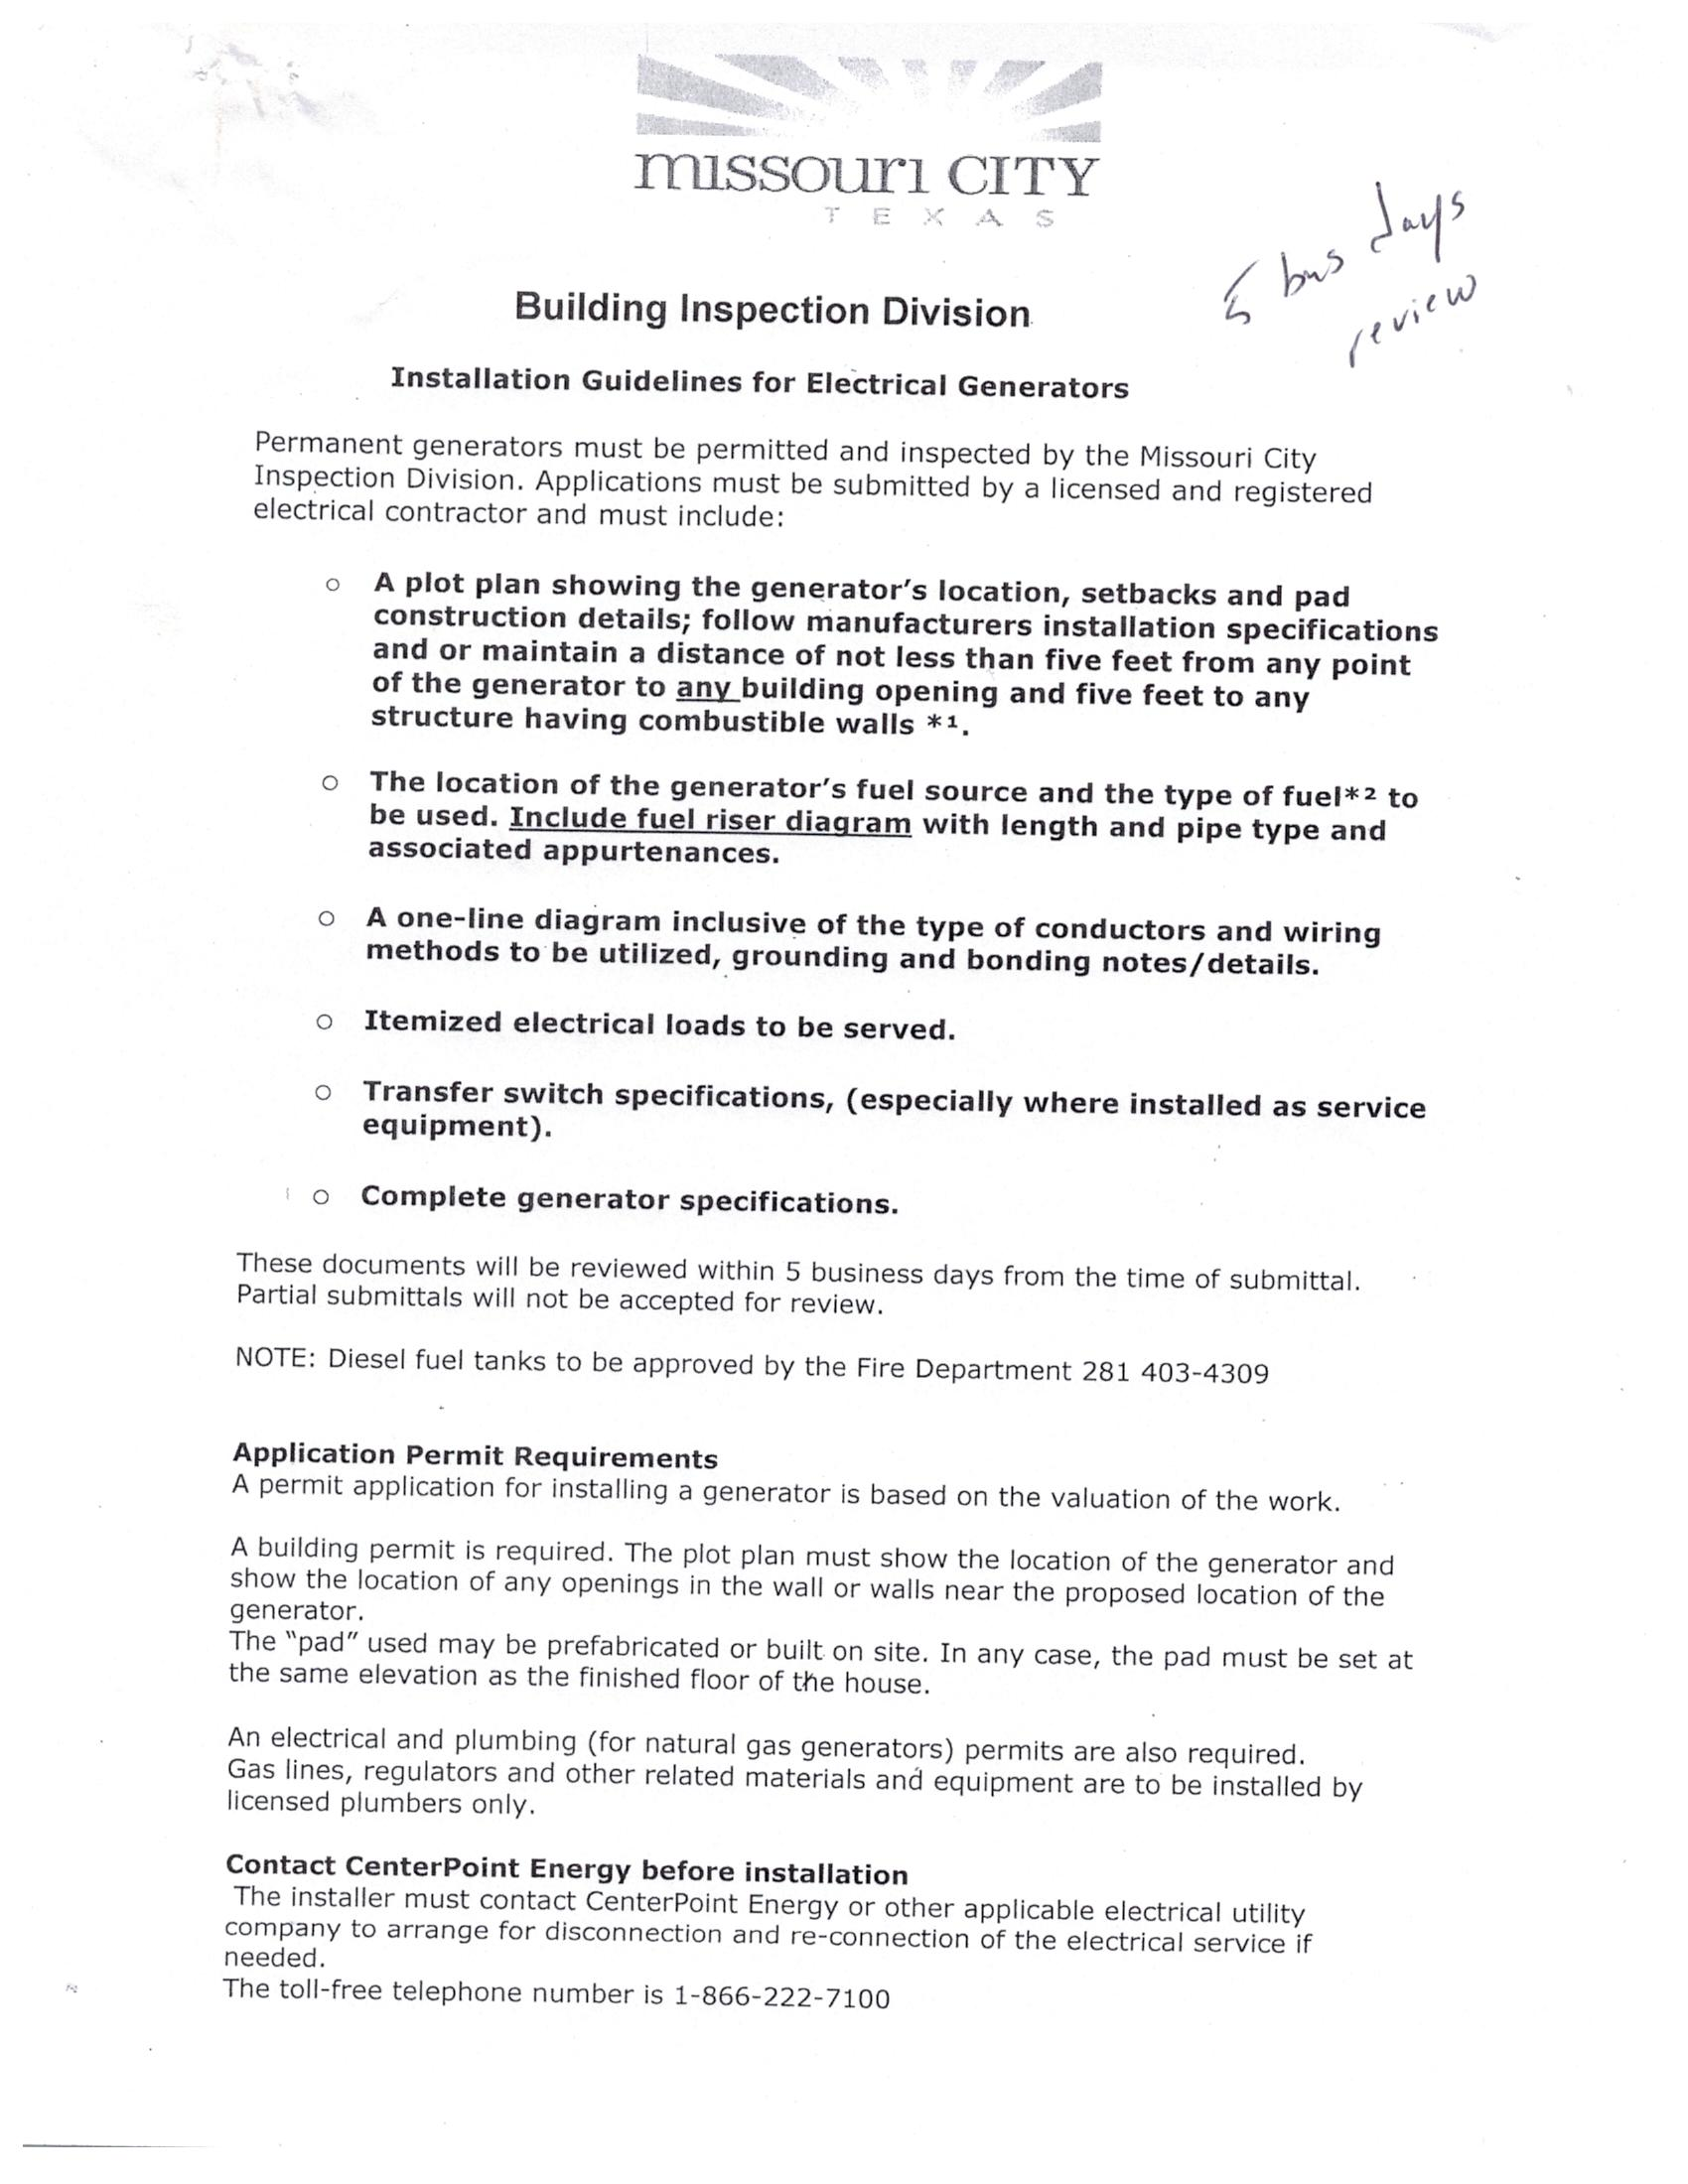 Generator Permit Red Tape Electrician Talk Professional How Does An Electric Work Image 268